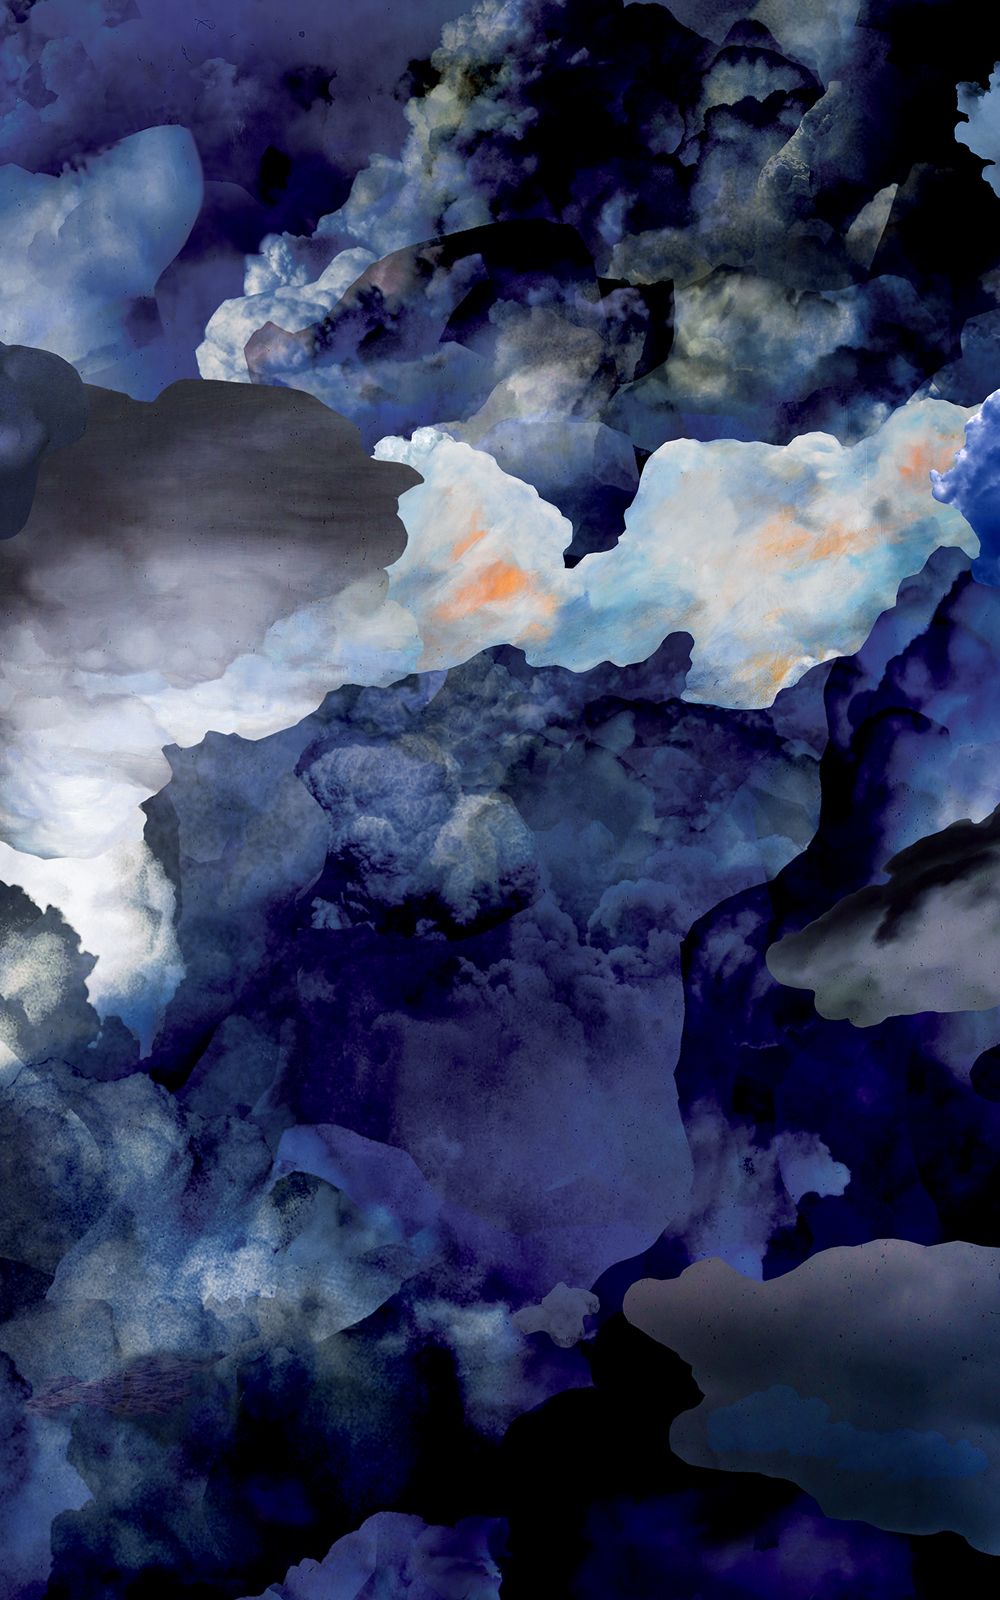 Case Simmons, Simmons & Burke, Clouds Wallpaper, Cloud Collage, Vinyl Wallpaper, Digital Collage,Digital Art, Photoshop Collage, Contemporary Collage,Case Simmons Art, Collage Fine Art, Fine Art Wallpaper, Abstract Digital Collage,Kohn Gallery, Bank of America Lobby